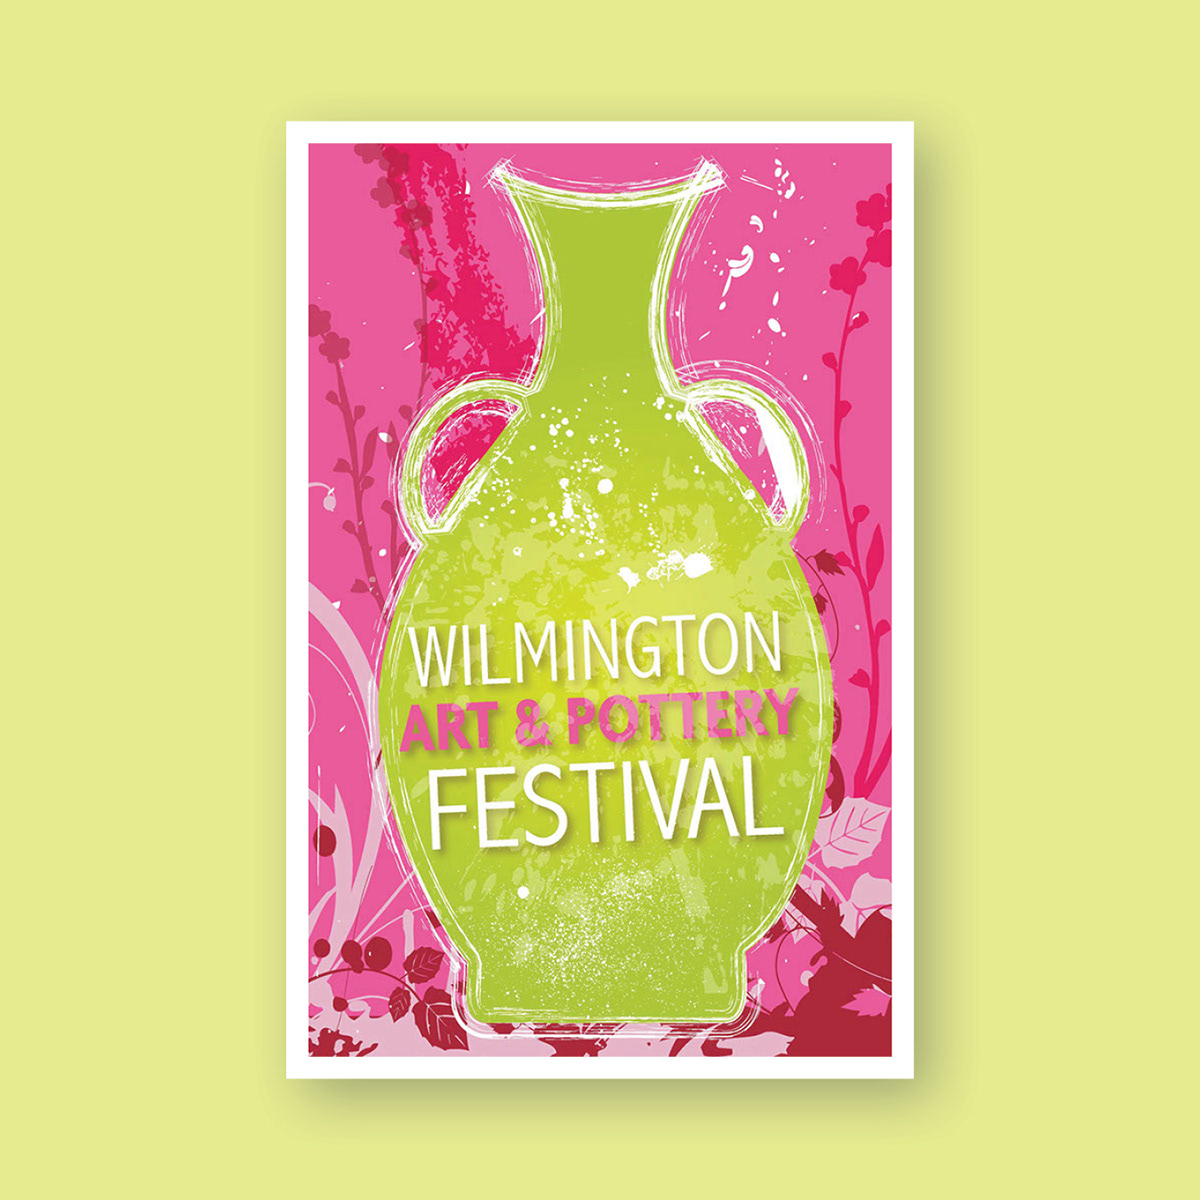 Wilmington Art & Pottery Festival Poster Design